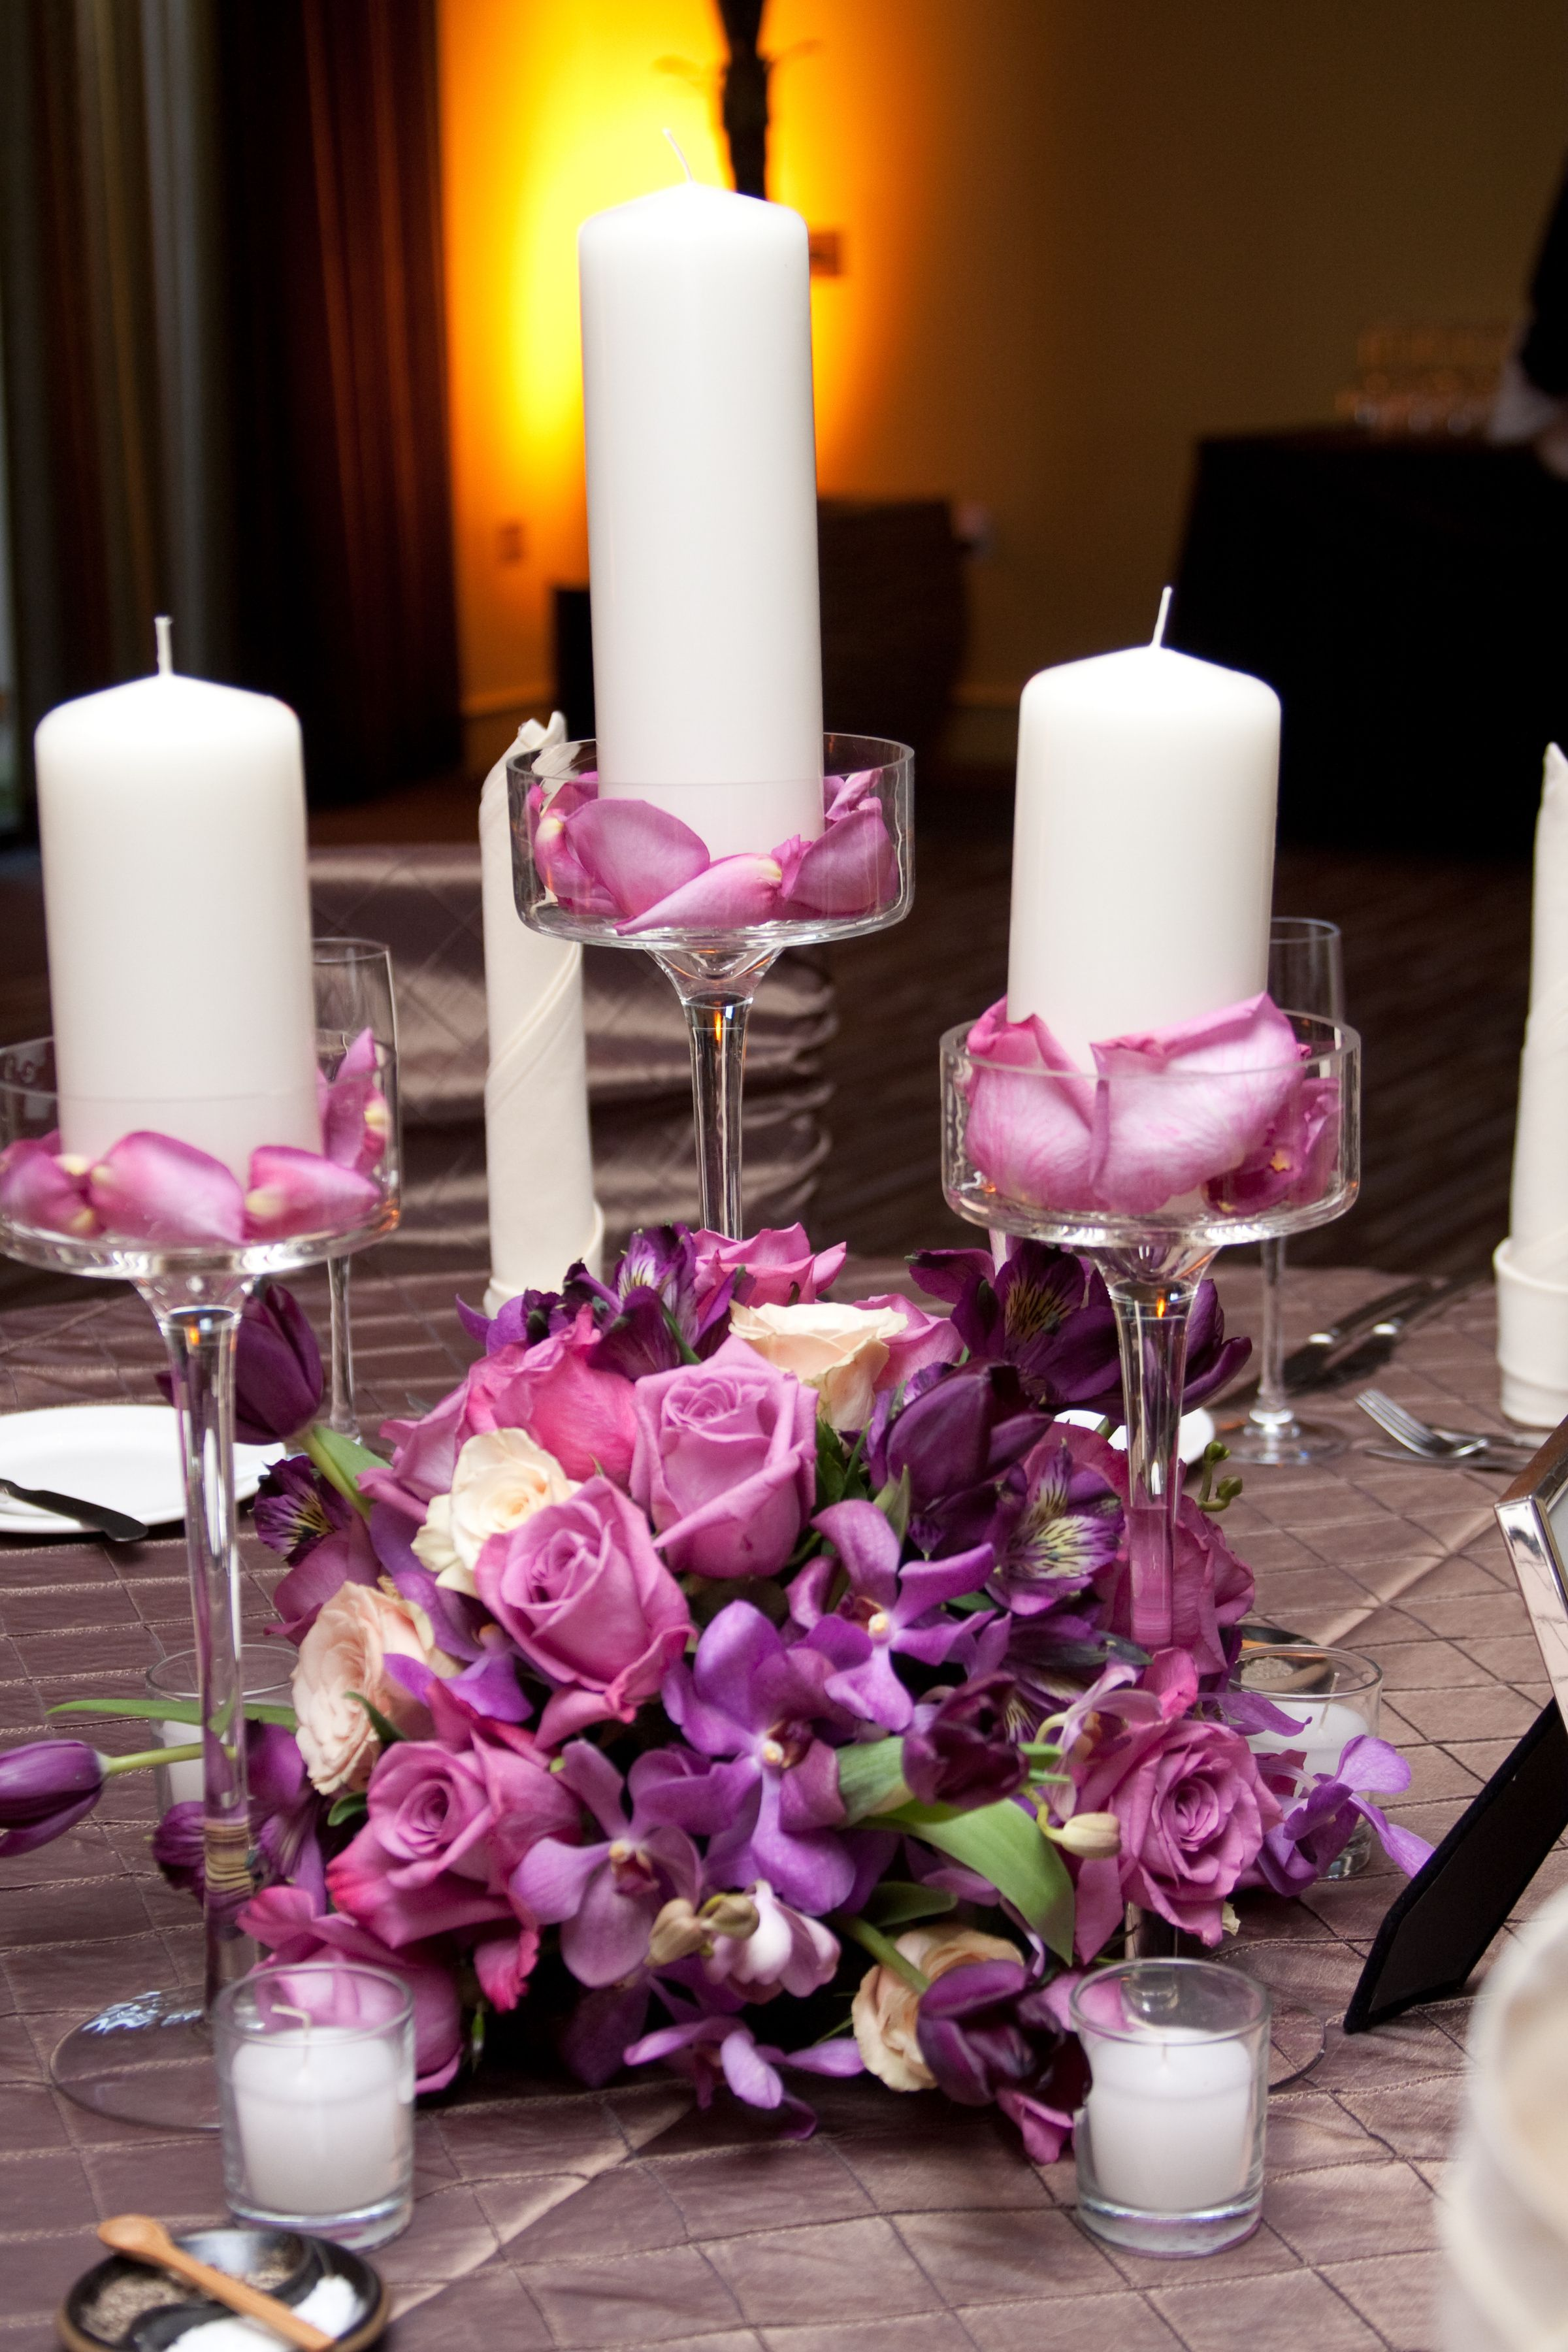 Purple Rose & Candle Wedding Centerpiece by Blume Events